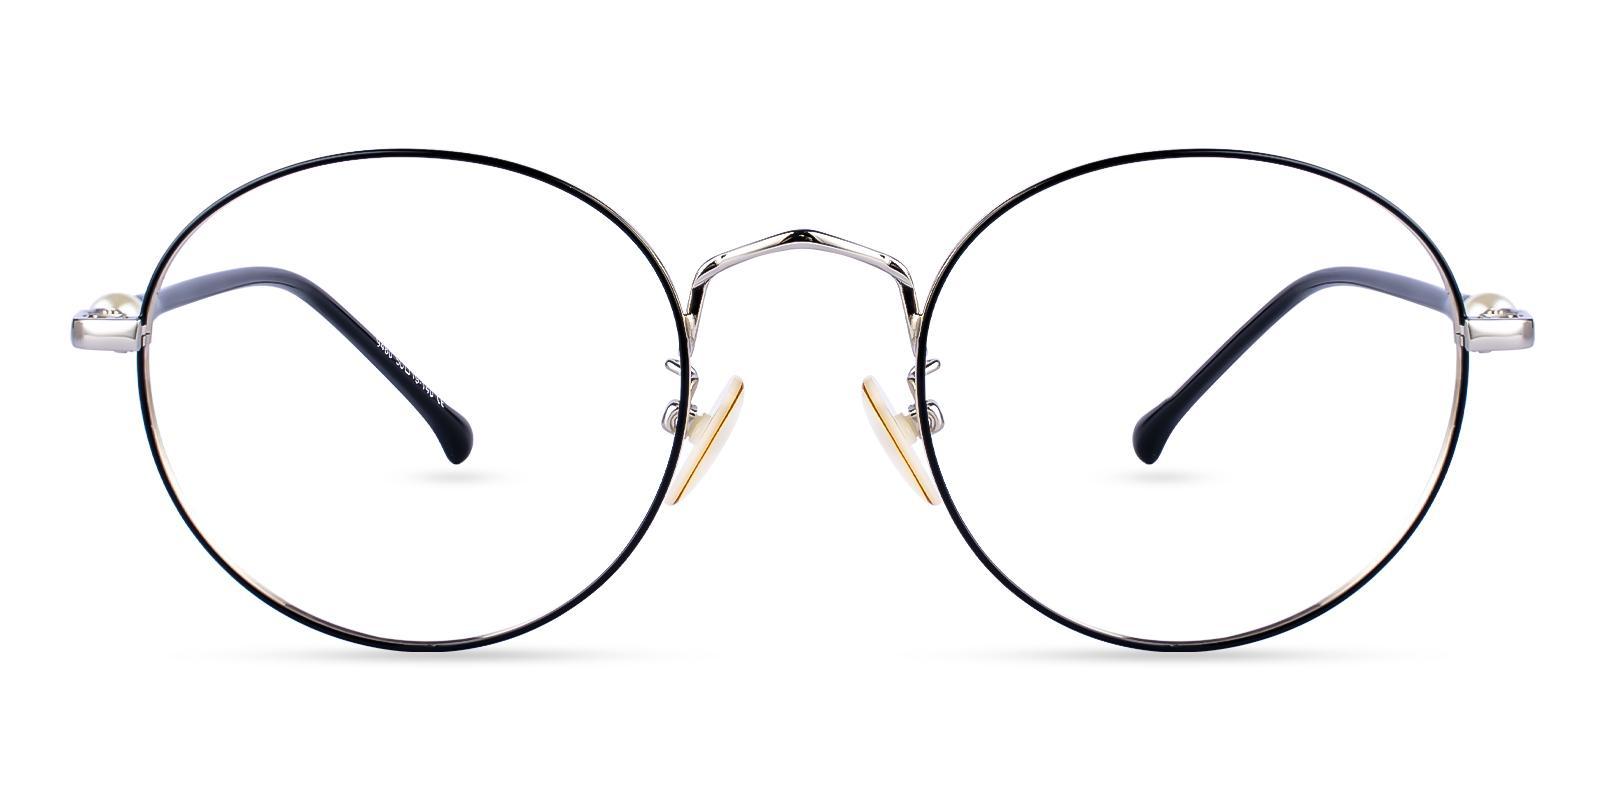 Durns Silver Metal Eyeglasses , NosePads Frames from ABBE Glasses